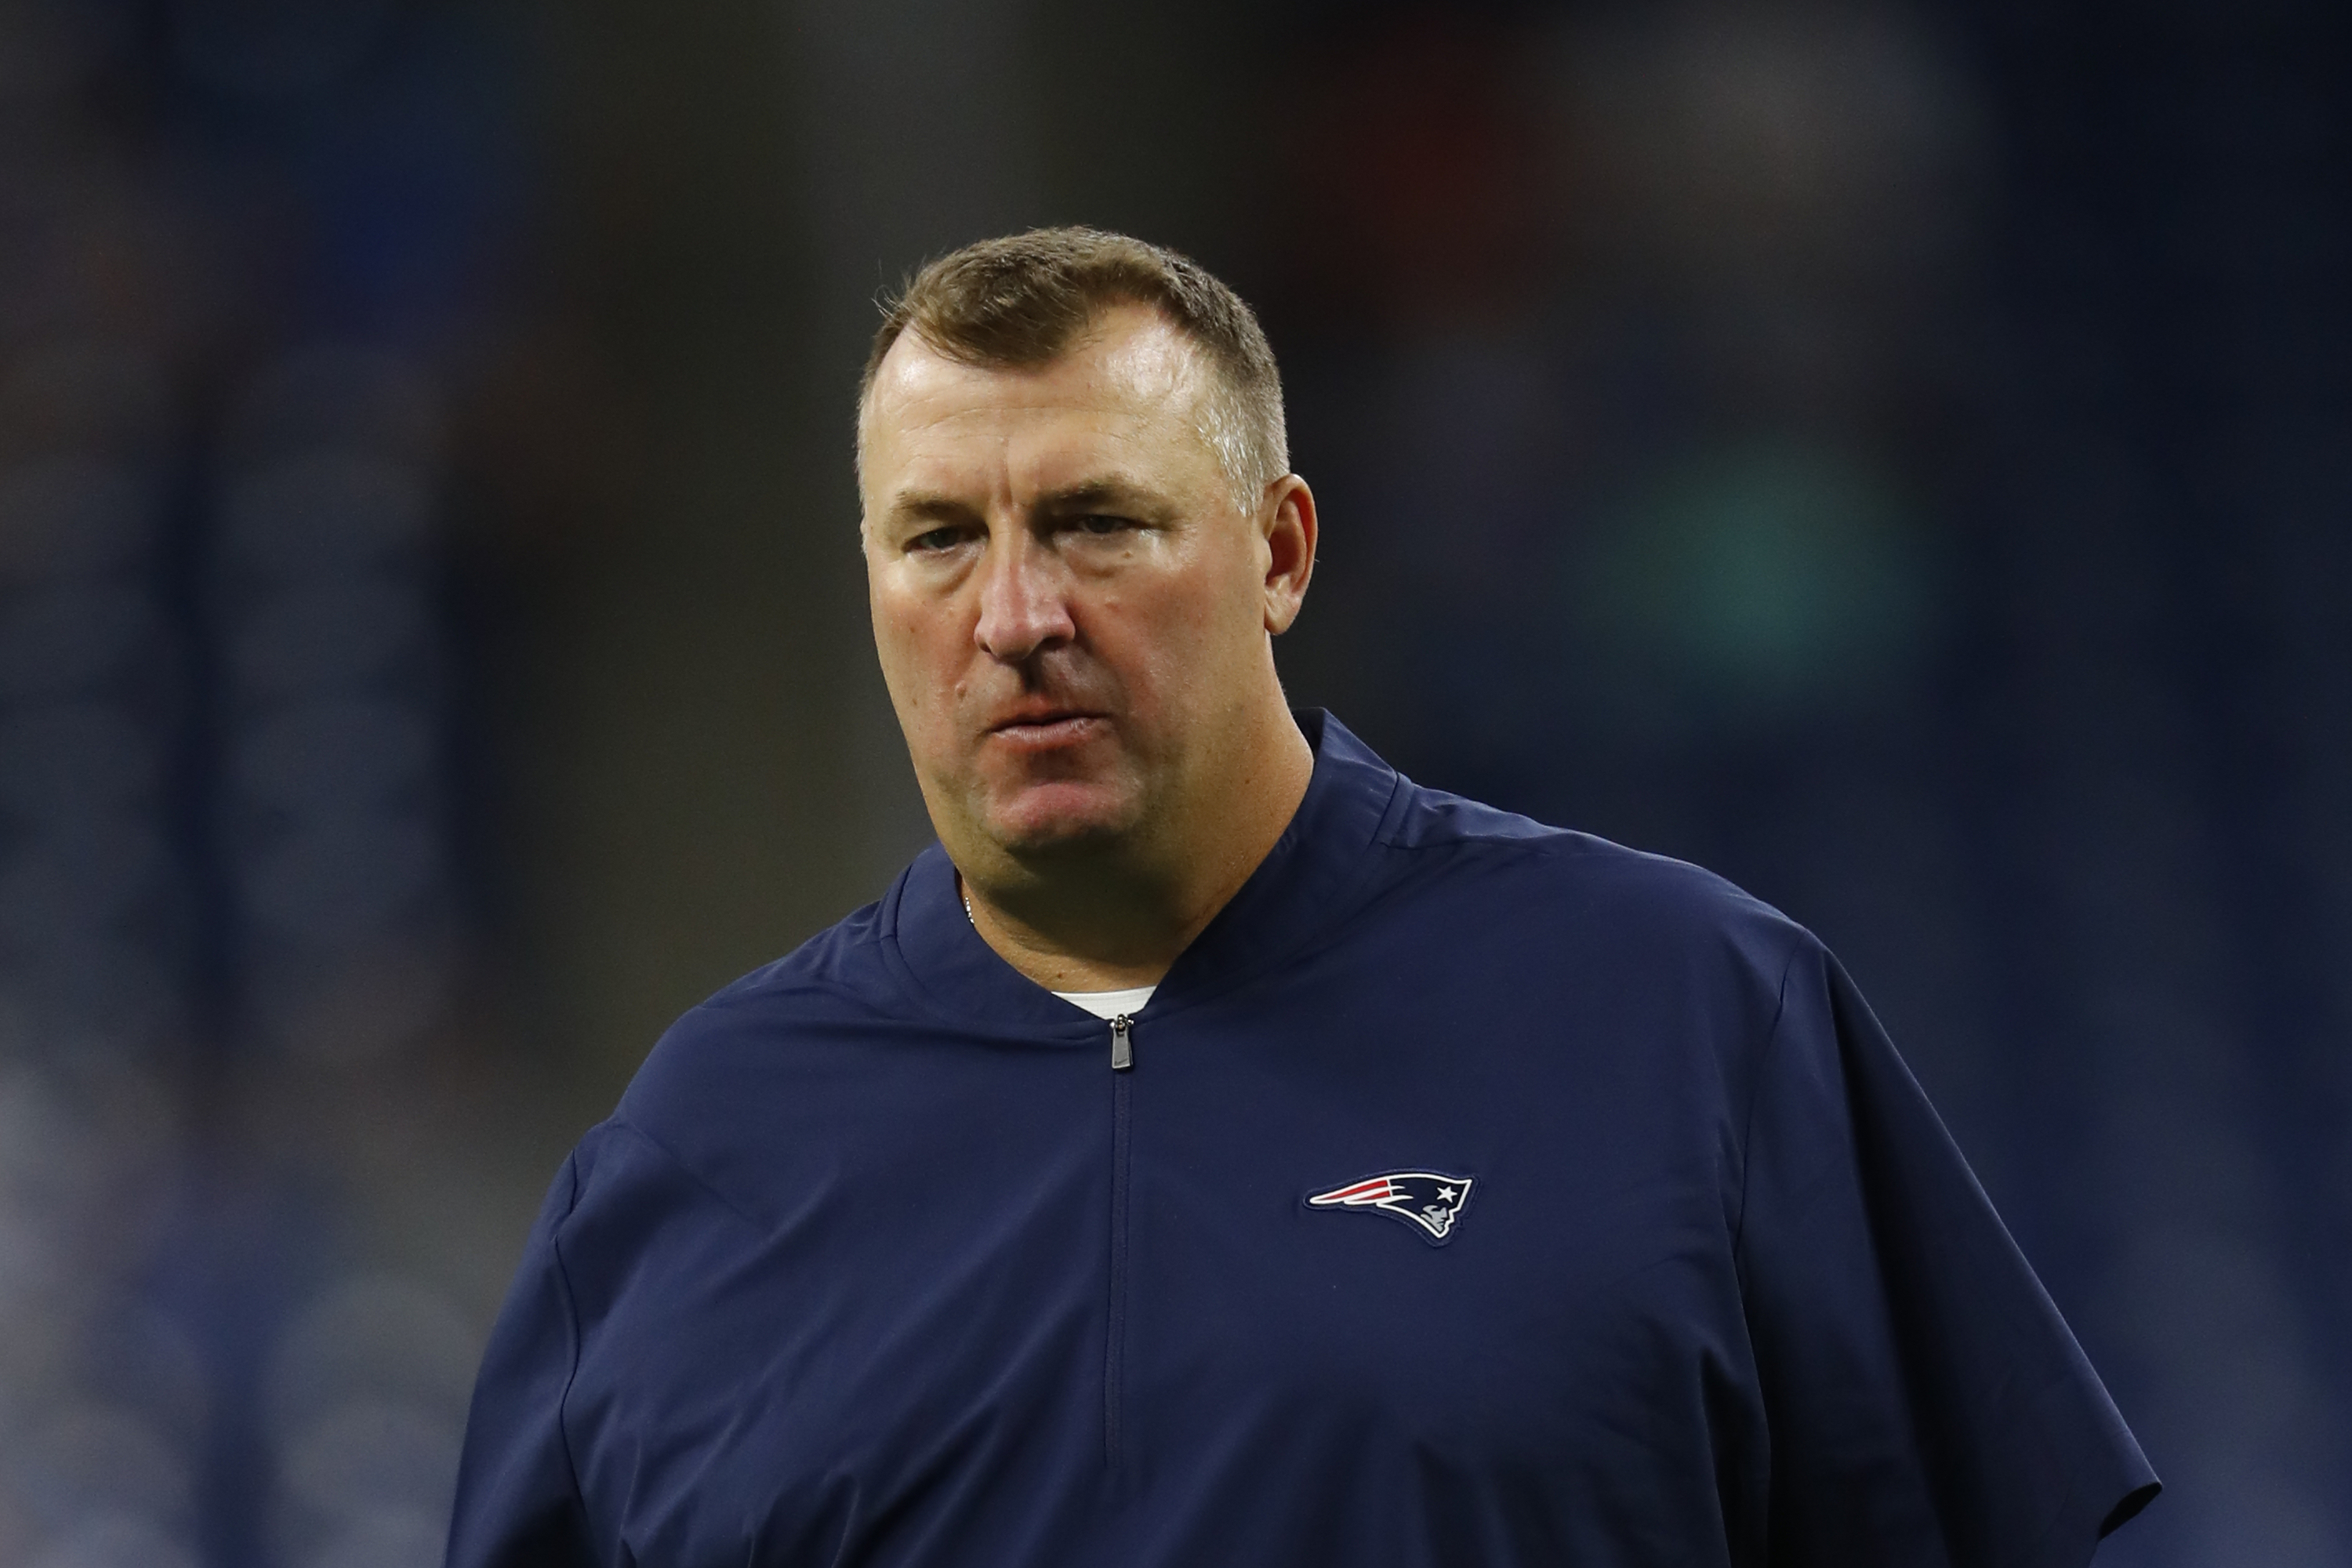 NFL rumors: Why Bret Bielema is staying with Giants instead of taking Michigan State job